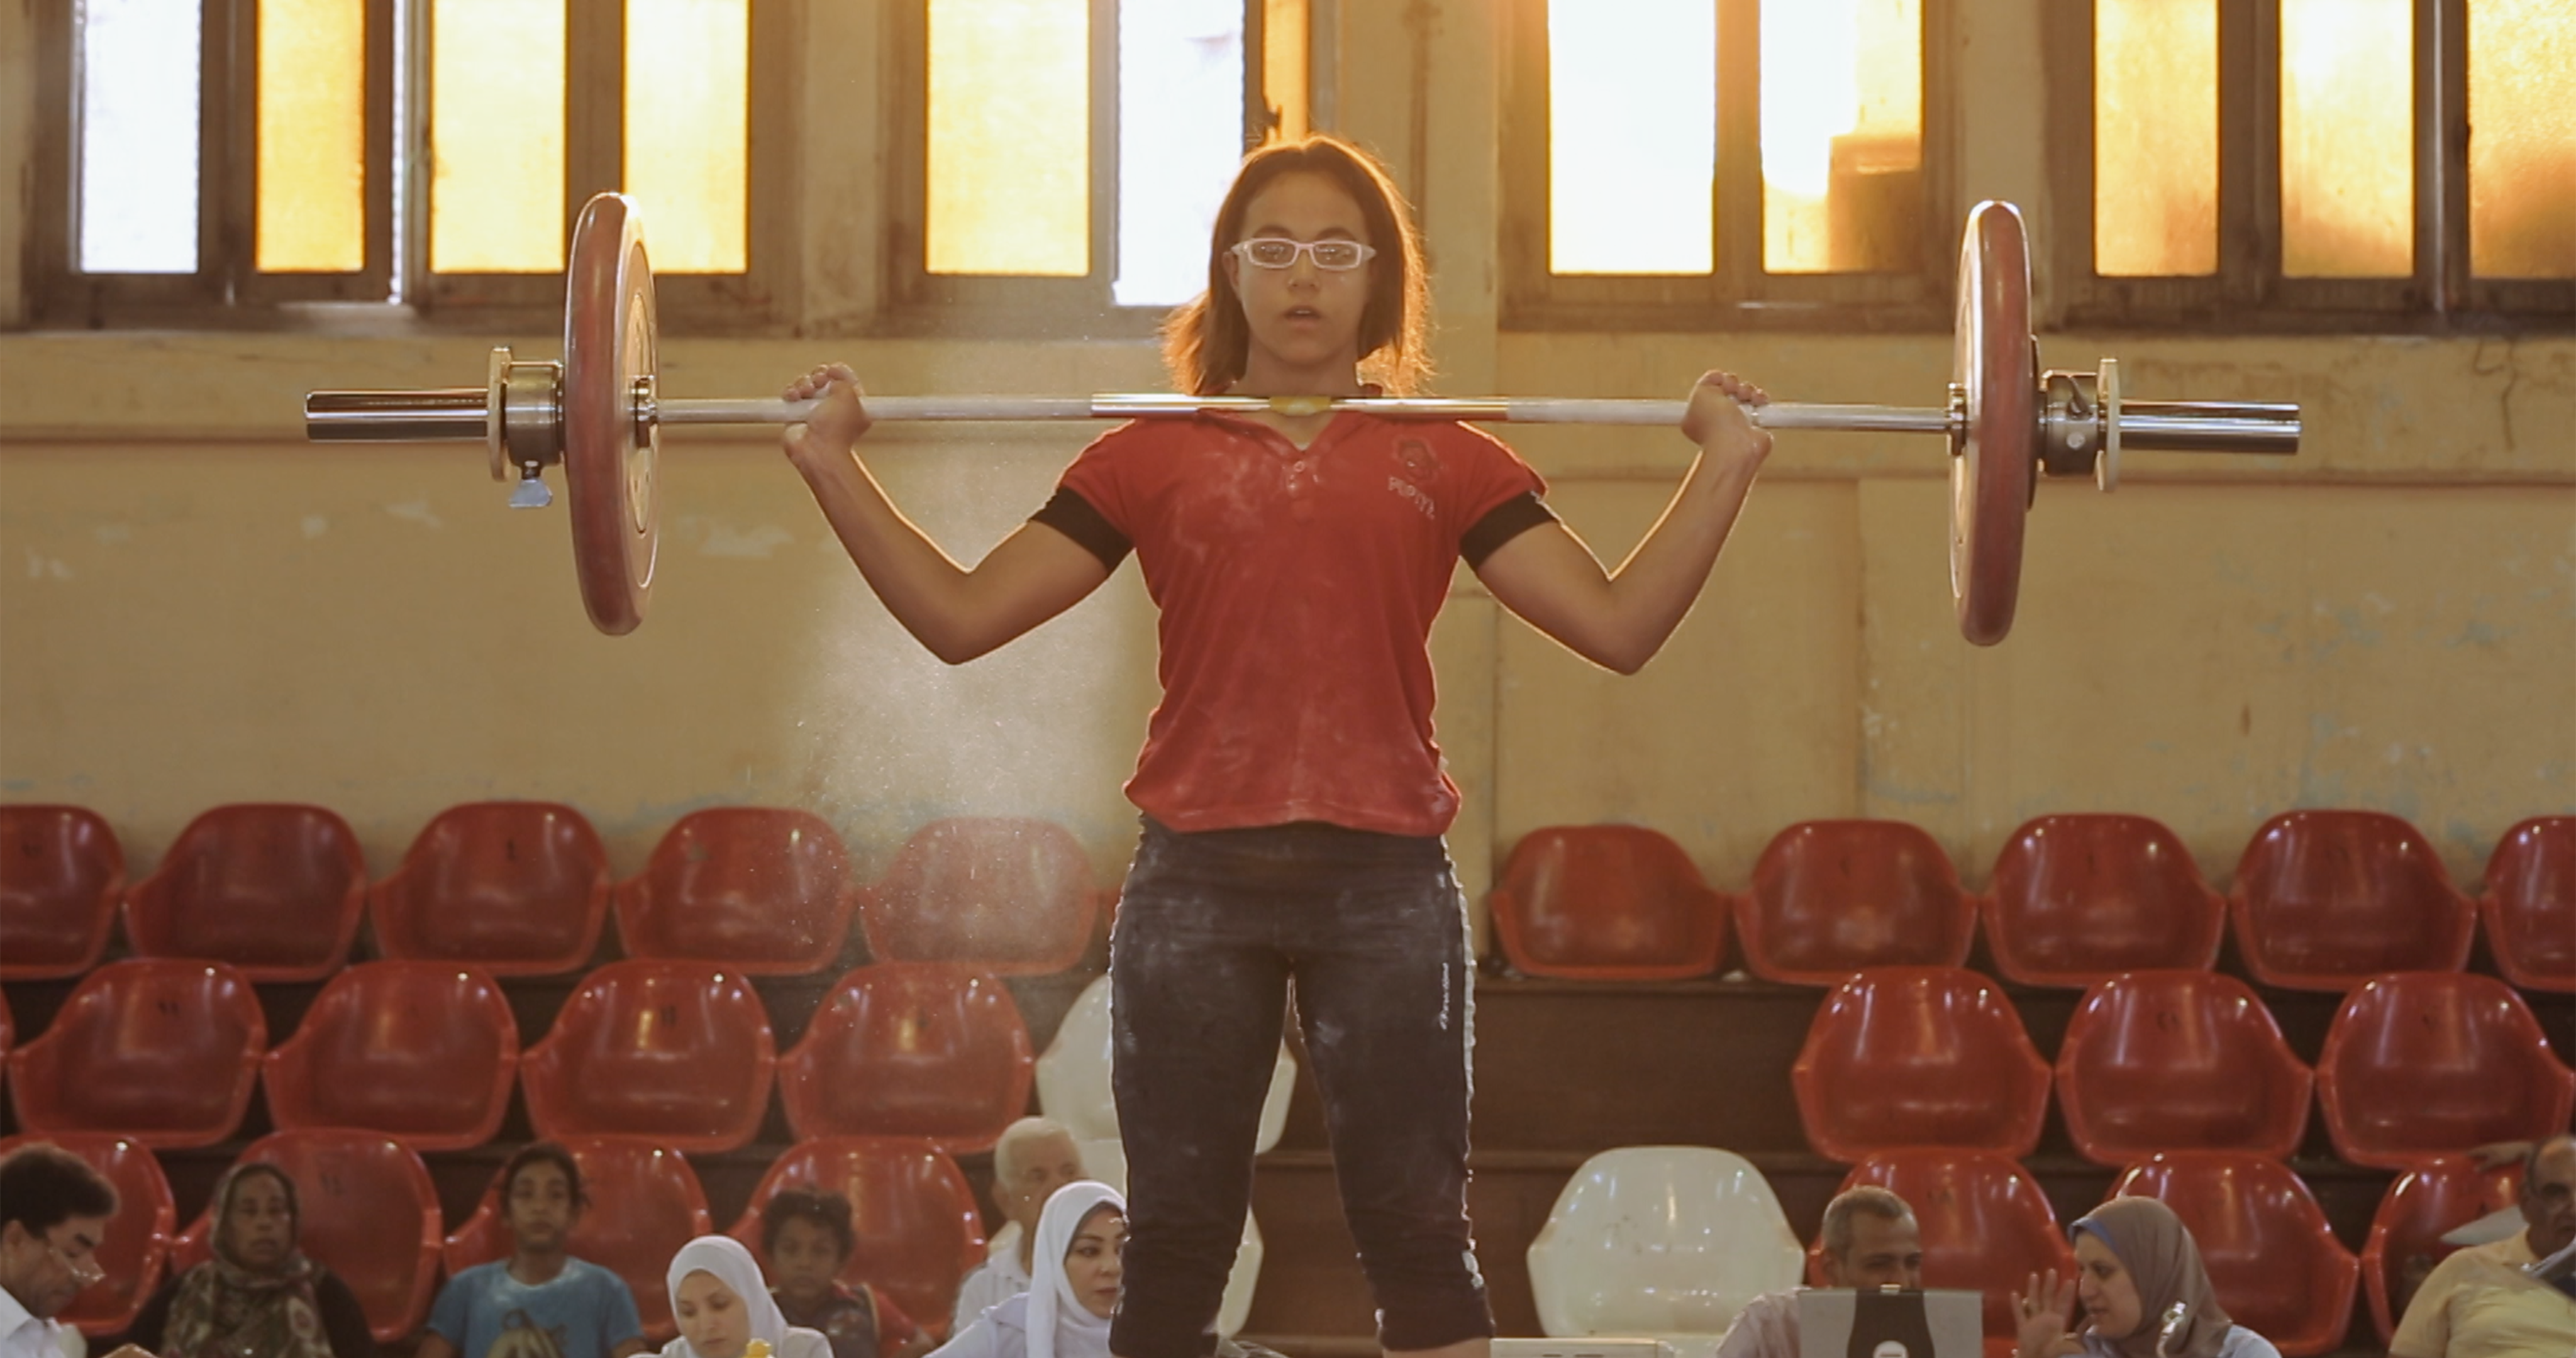 A girl in the process of weightlifting. Wearing white glasses and a red shirt, she holds the weighted bar on her chest. With red spectator seats in the background, the shot is illuminated by soft sunlight from the windows.